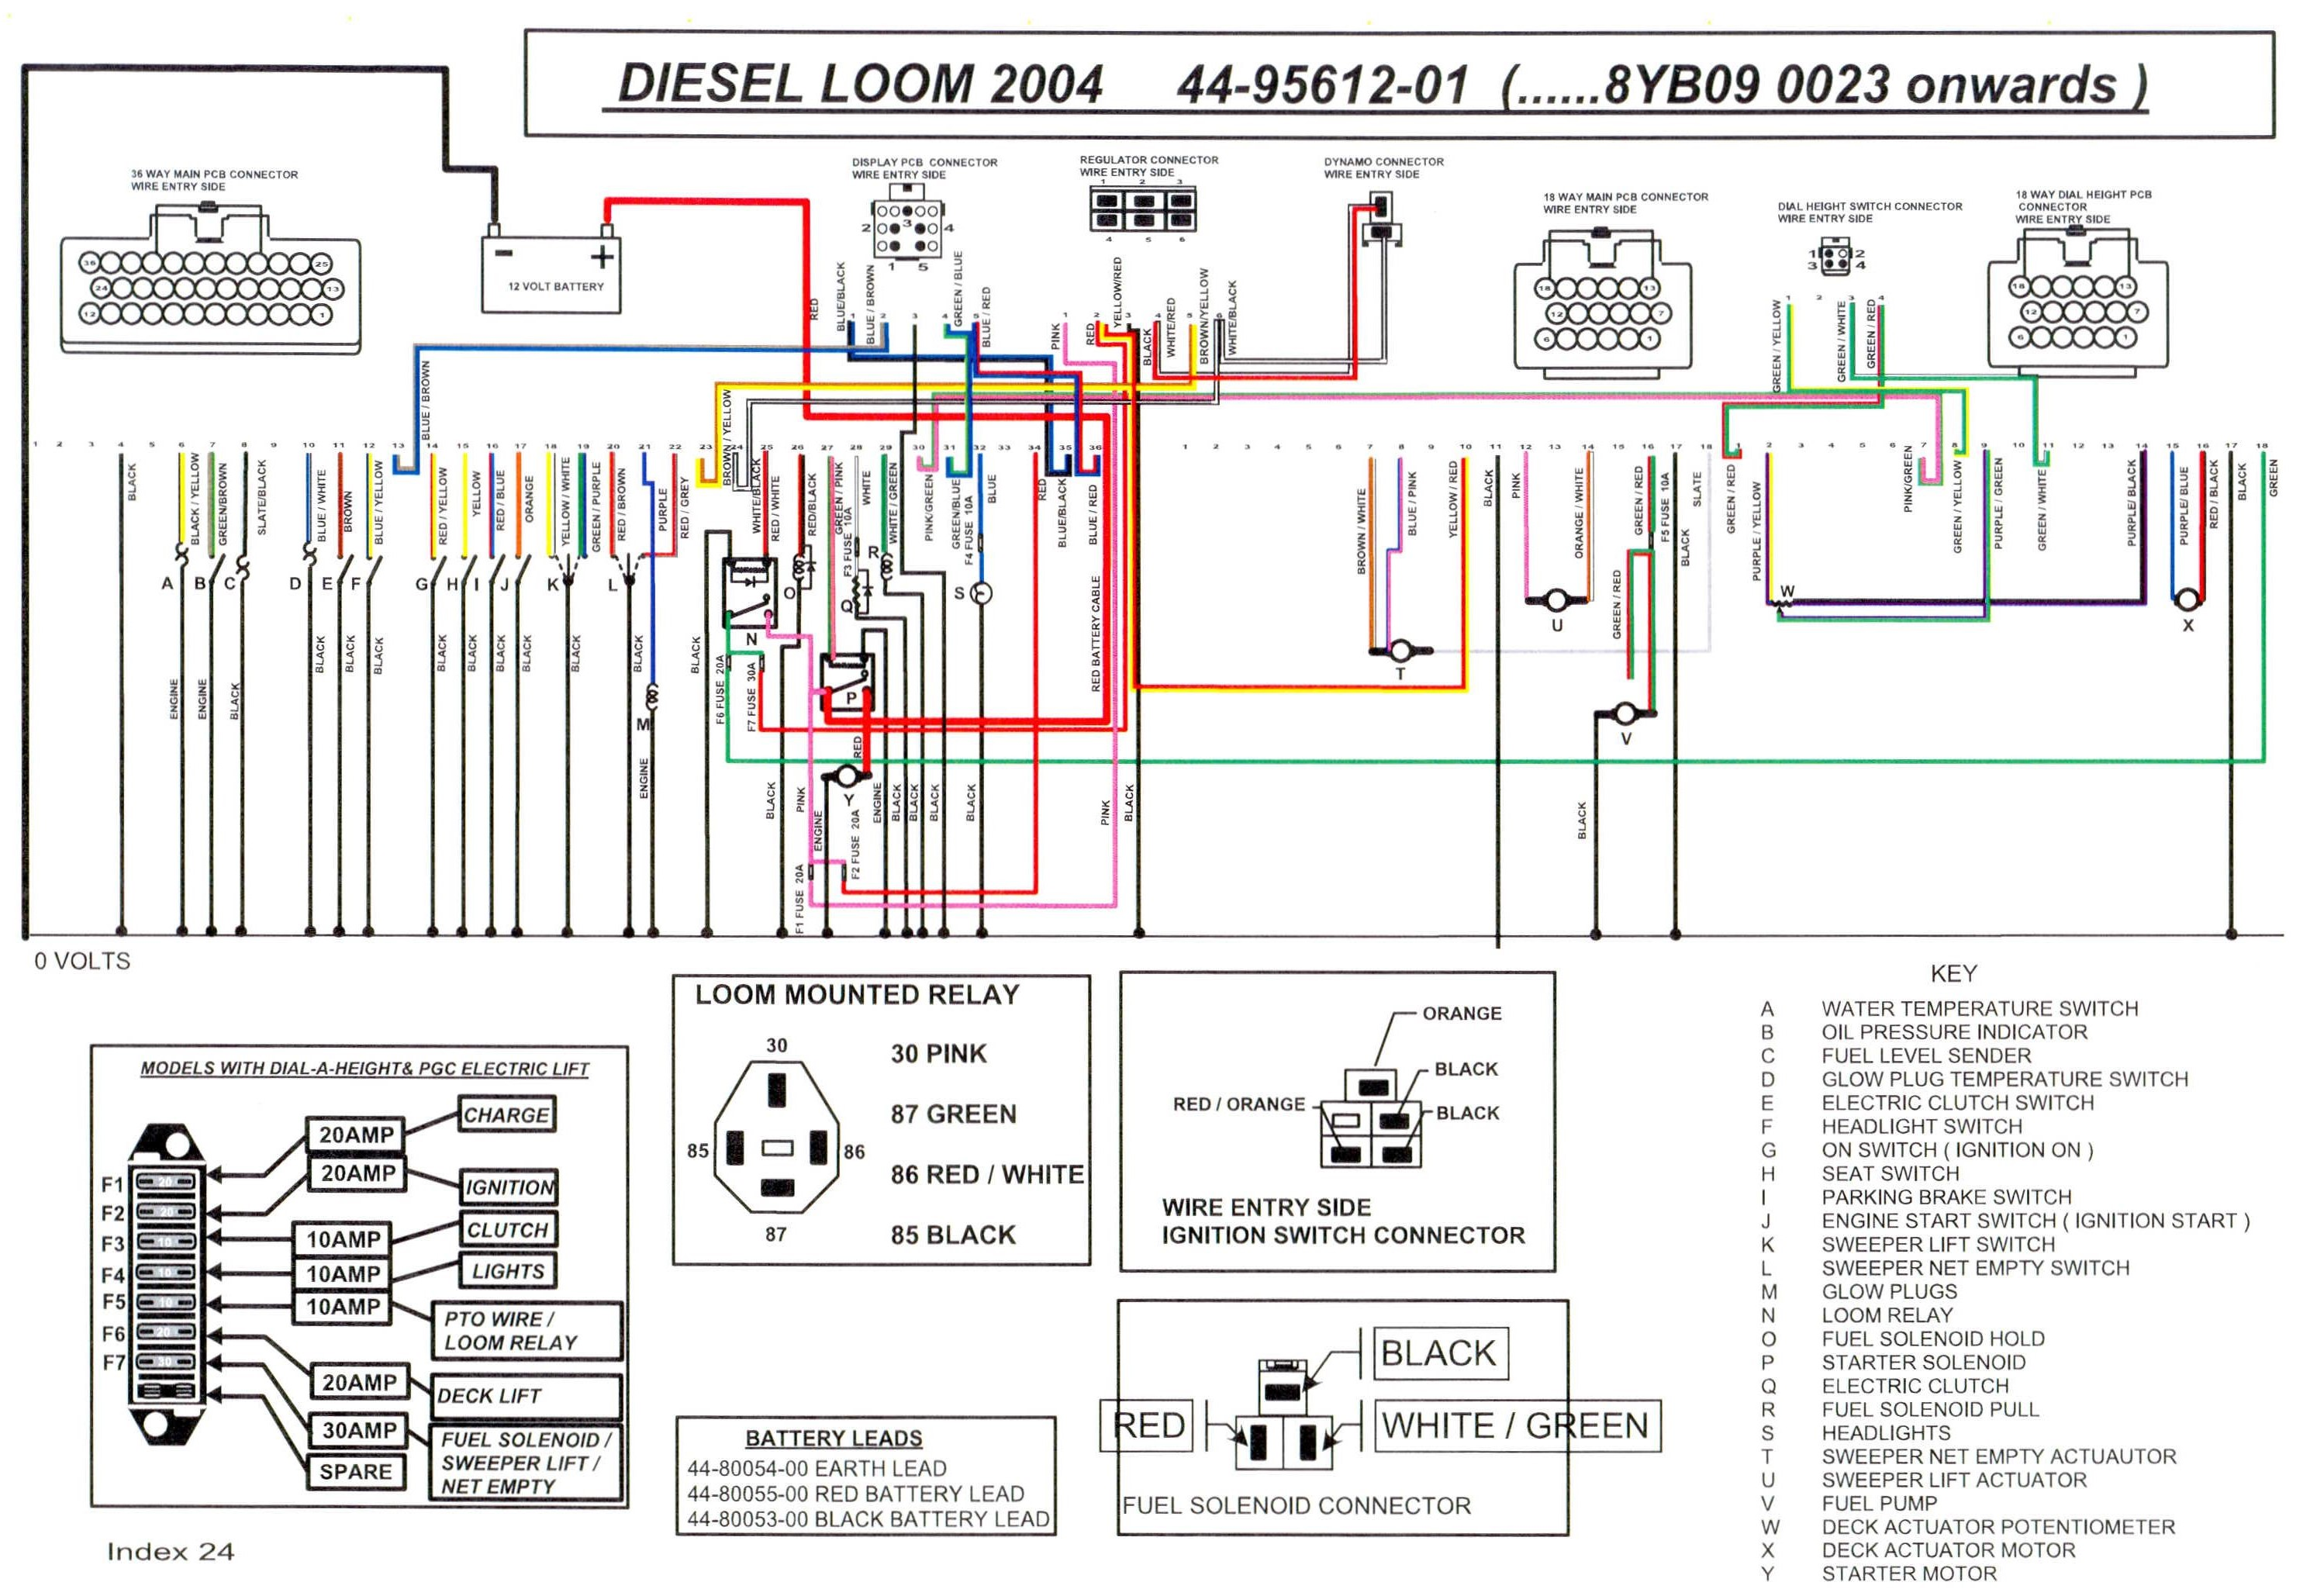 24 449561201 JCB _ D1850 colour (frm Jan 04) page 001?1453729113 countax d18 50 and jcb (2004) countax wiring diagram at pacquiaovsvargaslive.co